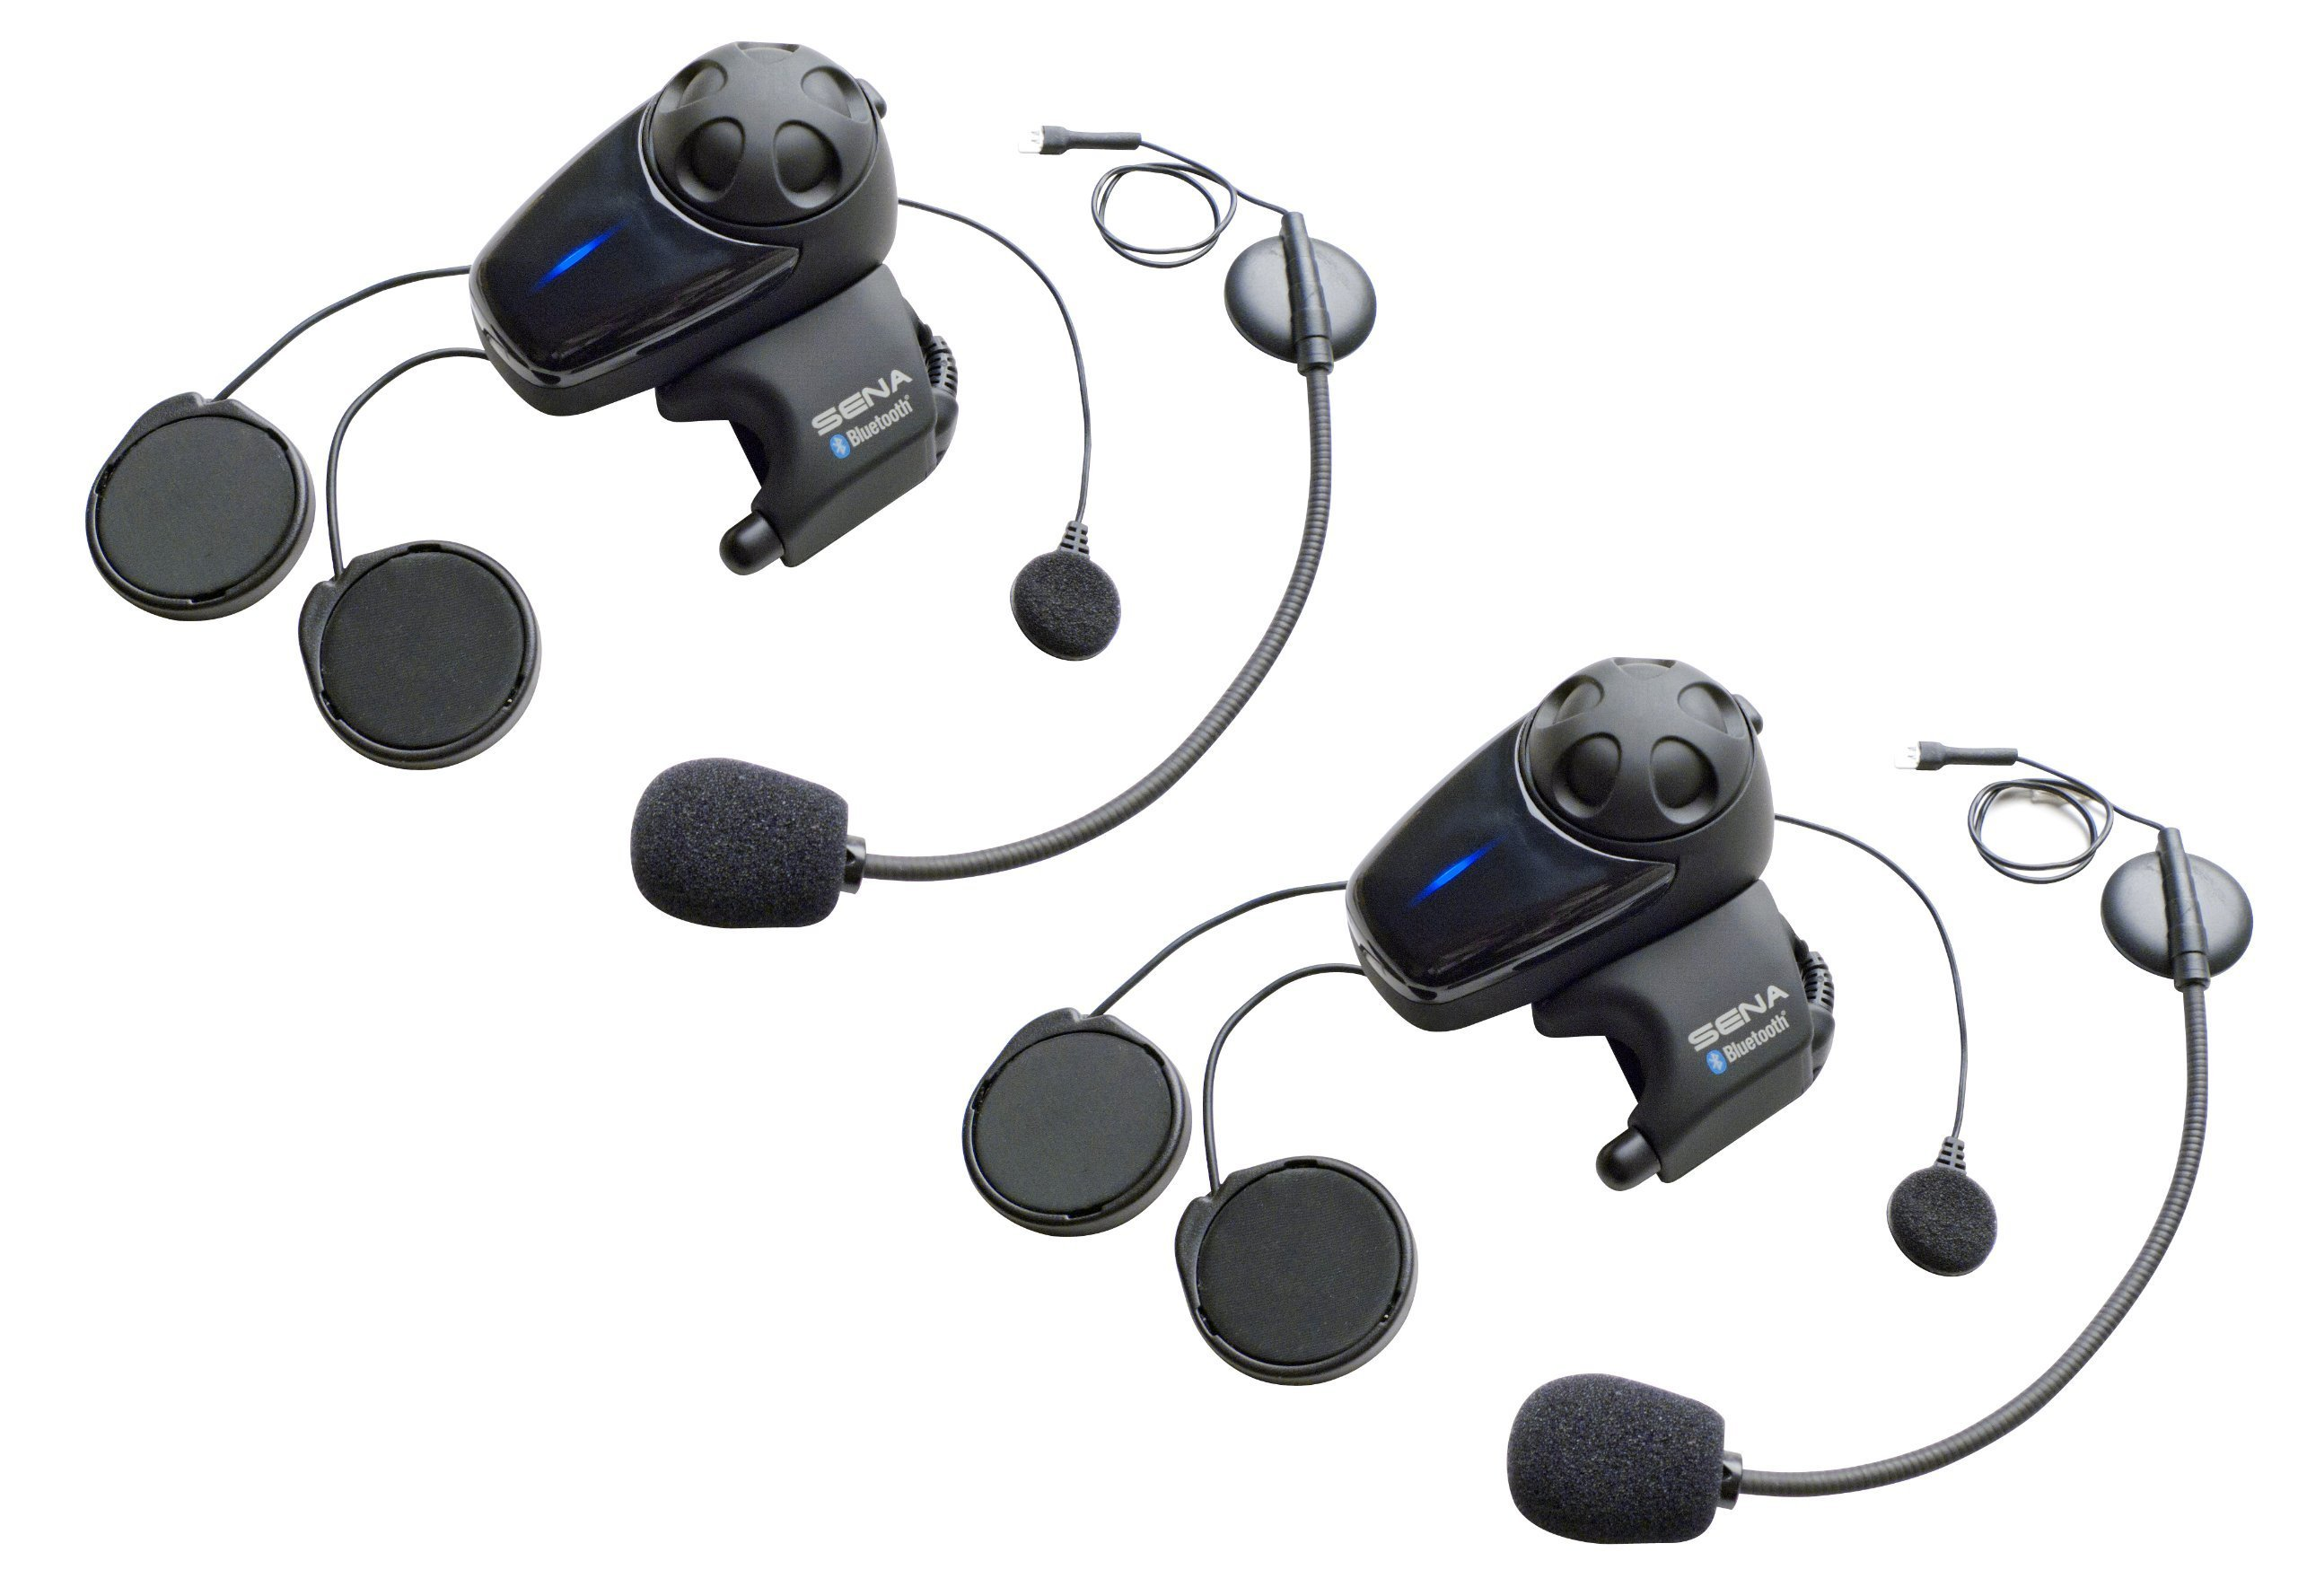 22ee4c8d20d Sena SMH10D-11 Motorcycle Bluetooth Headset/Intercom with Universal  Microphone Kit (Pack of 2)